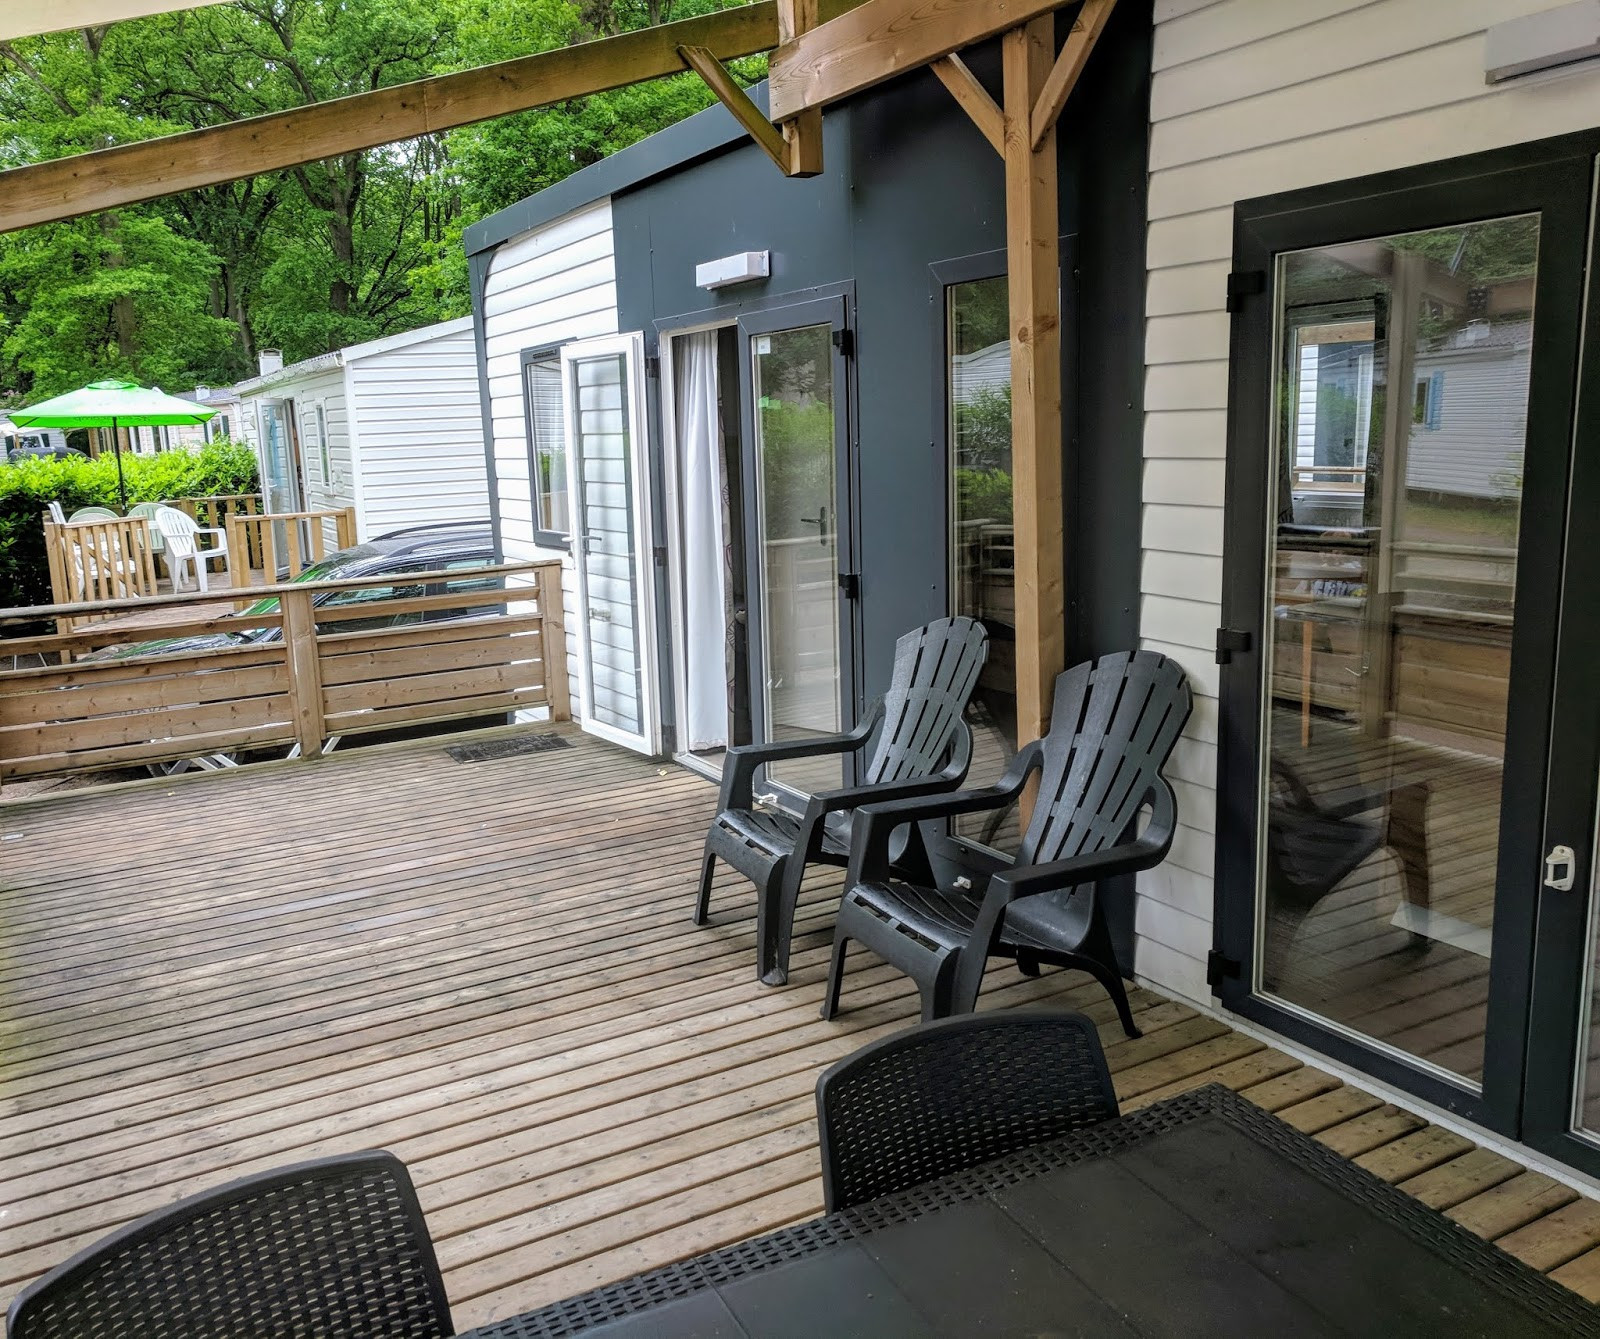 The Ultimate Guide to Staying at Duinrell with Eurocamp  -Eurocamp Avant Decking